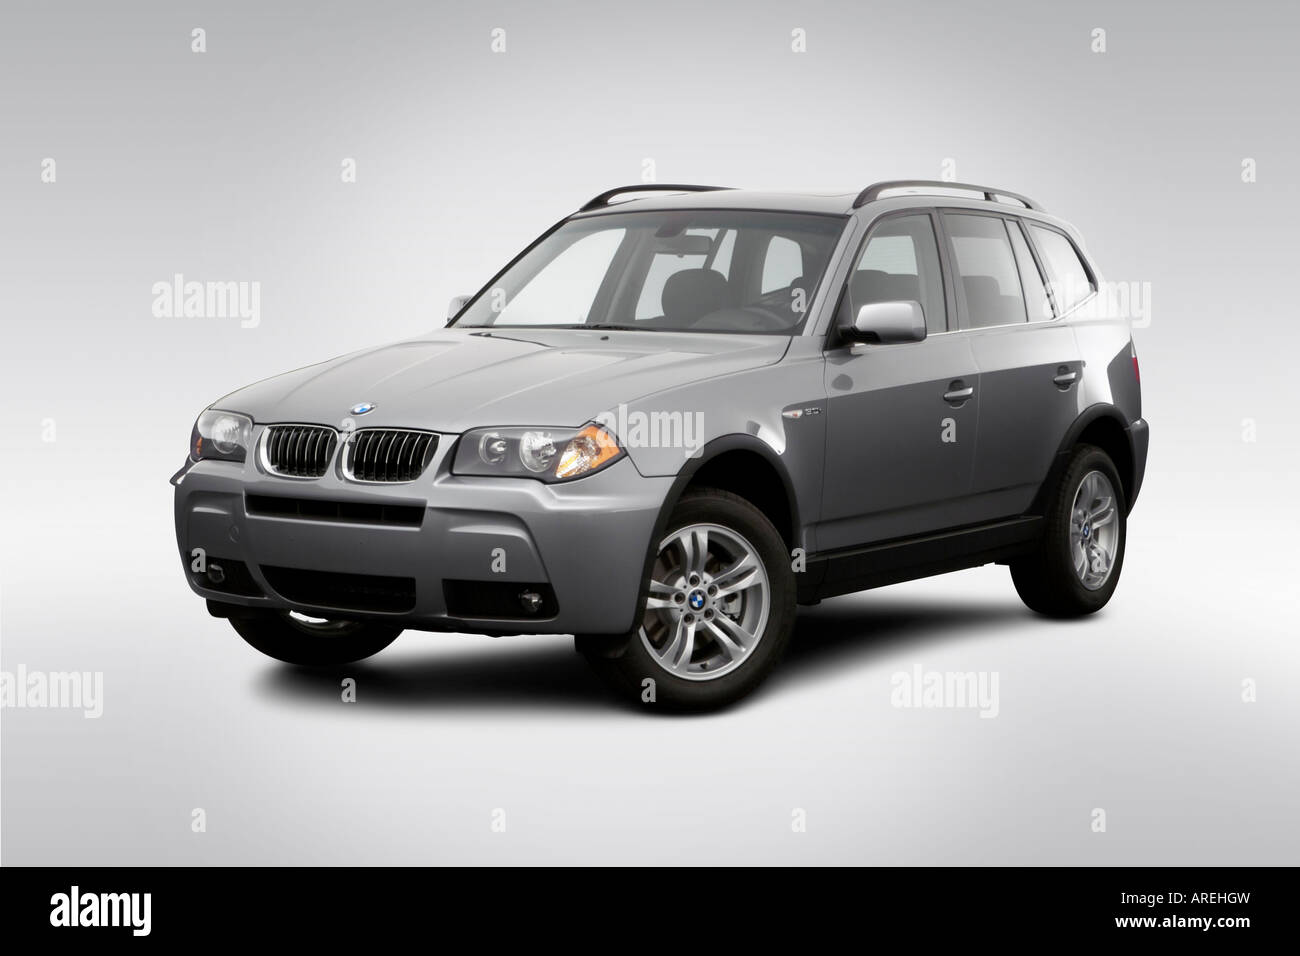 2006 Bmw X3 3 0i In Silver Front Angle View Stock Photo 16030872